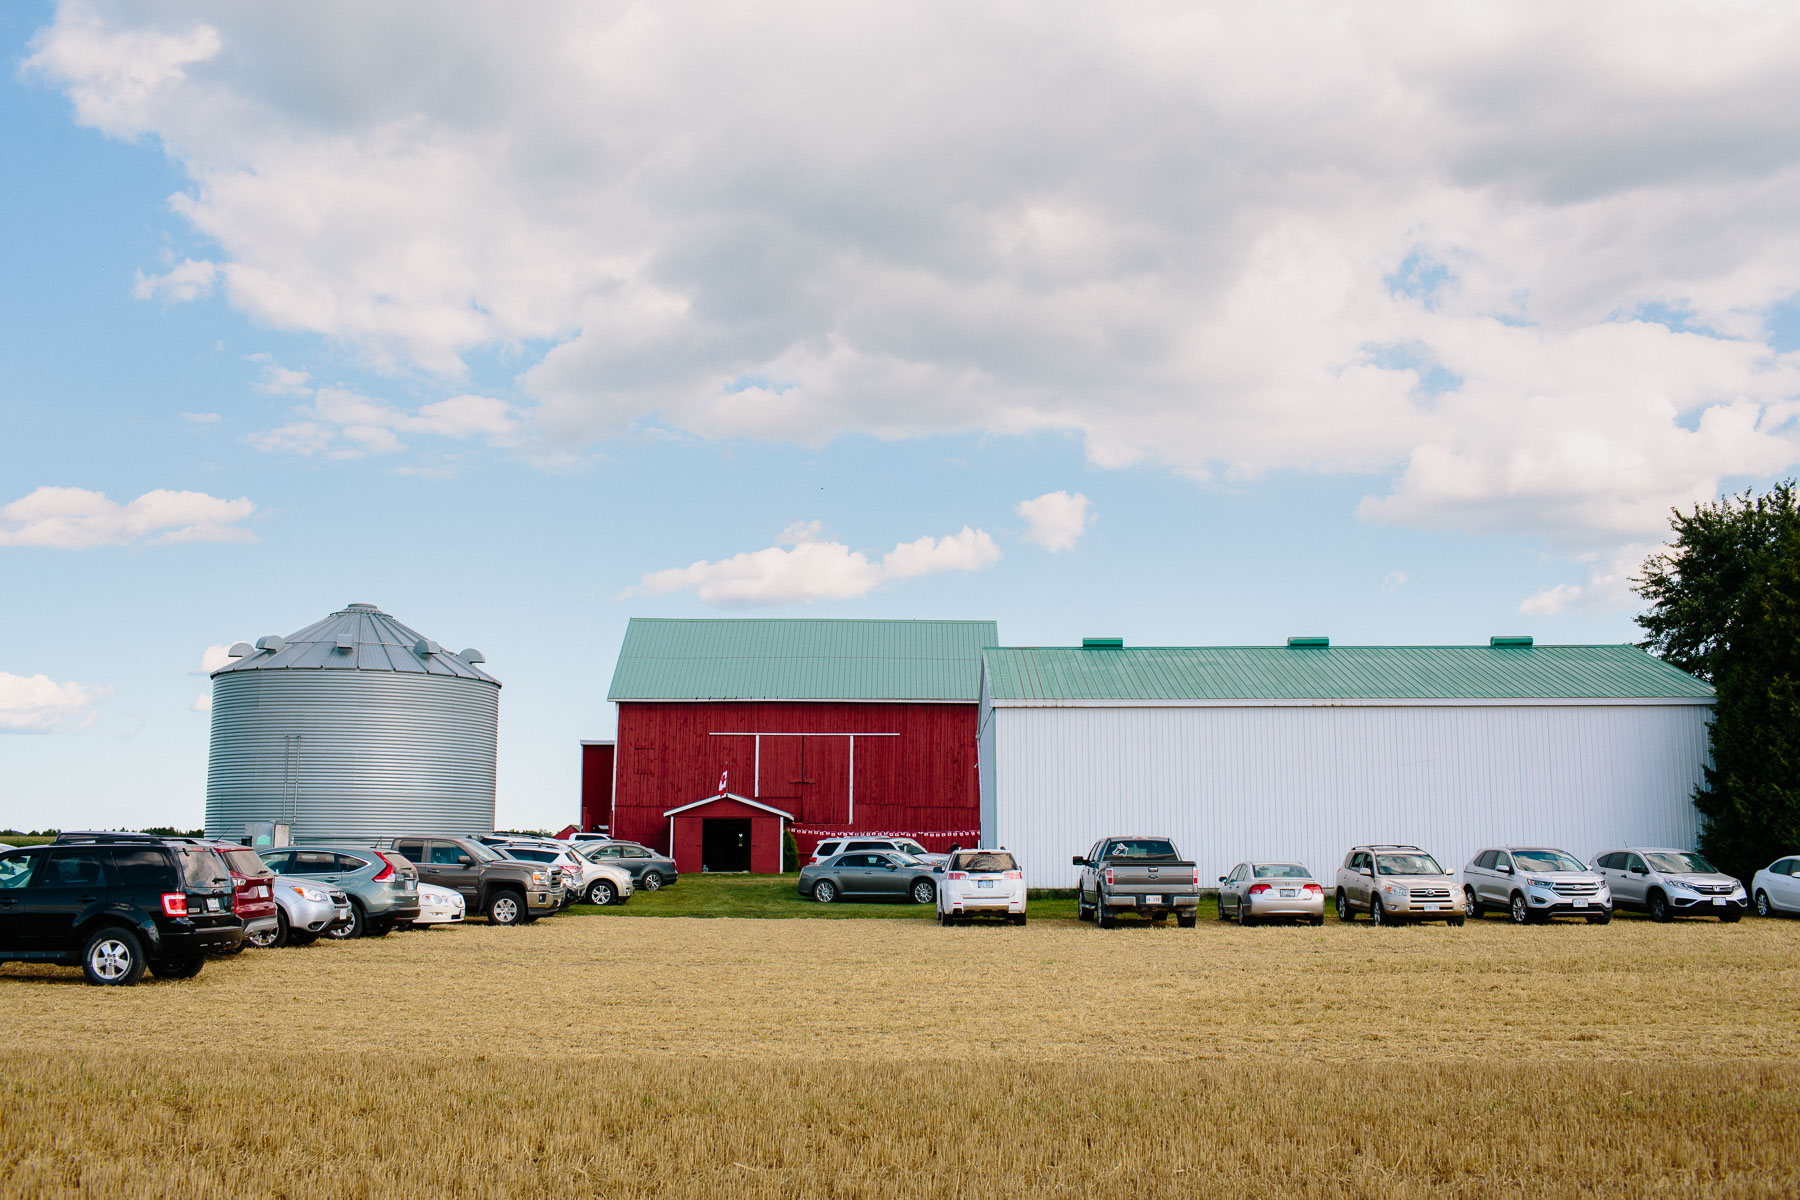 Guests cars parked on a cleared field to the side of the barns and silo at this rustic farm wedding.